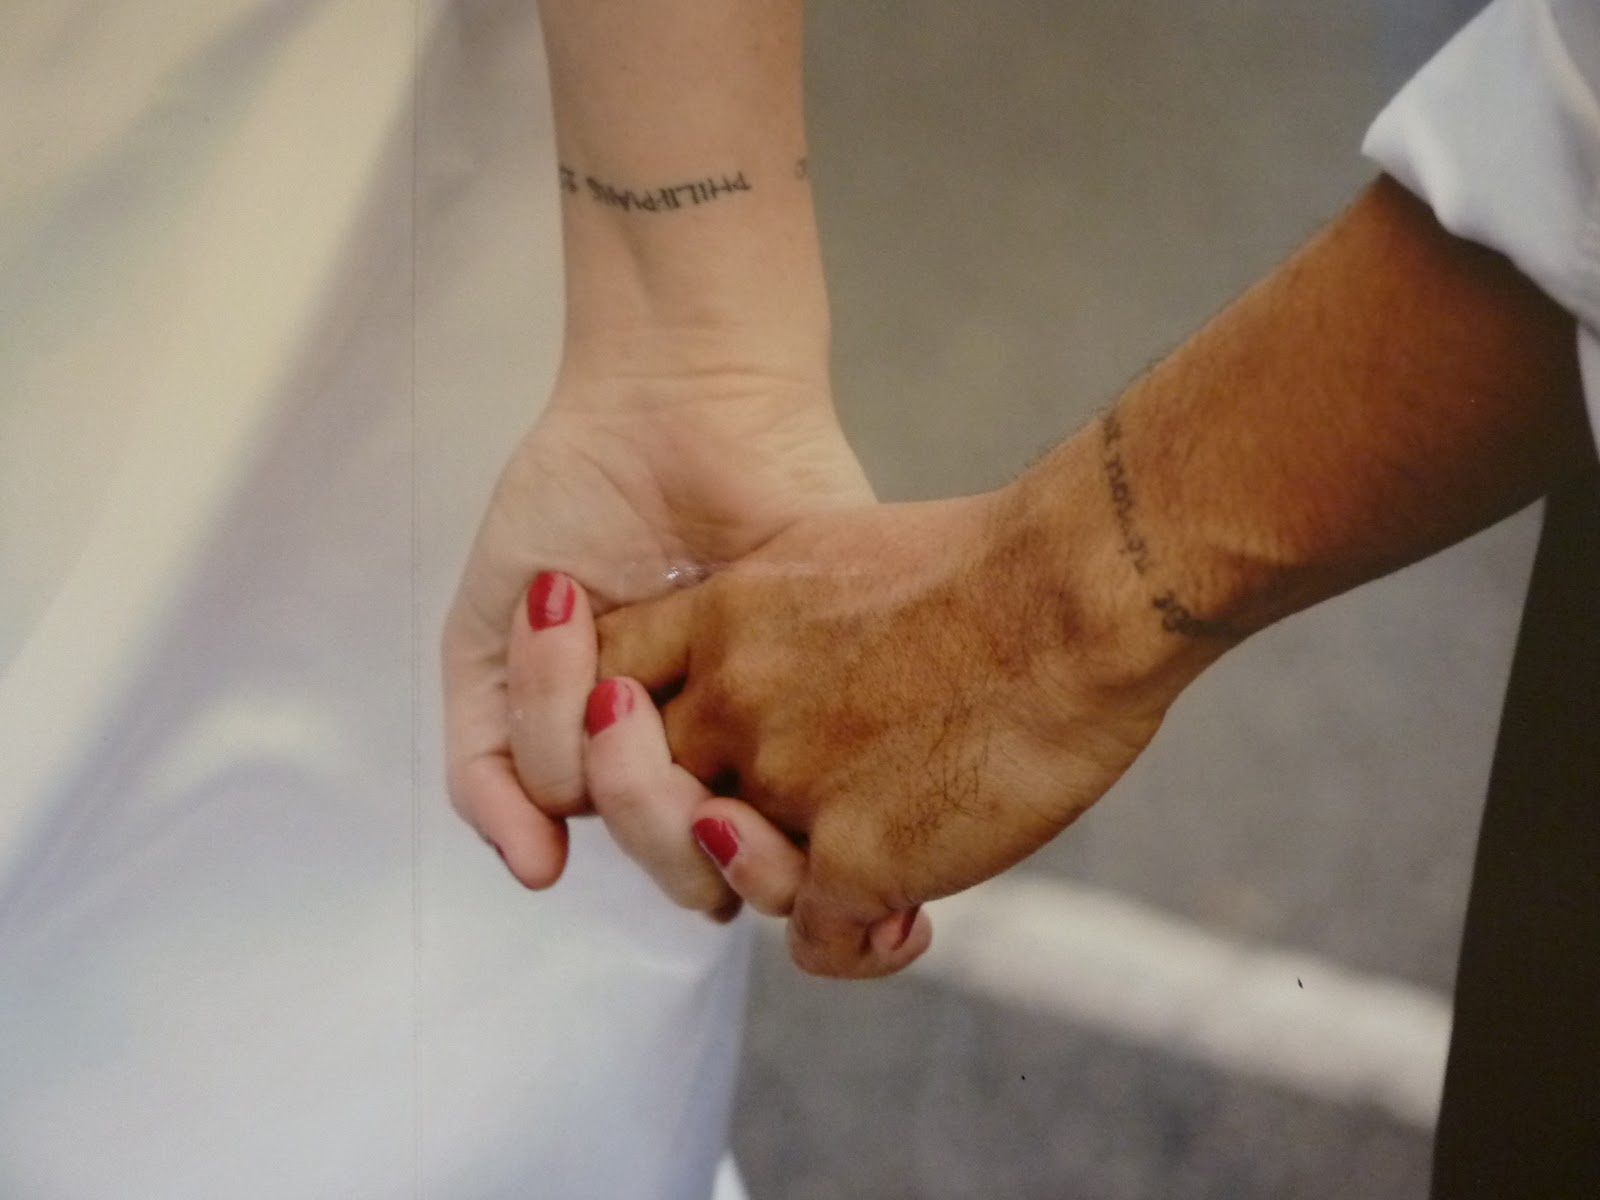 couple tattoos – Bing Images